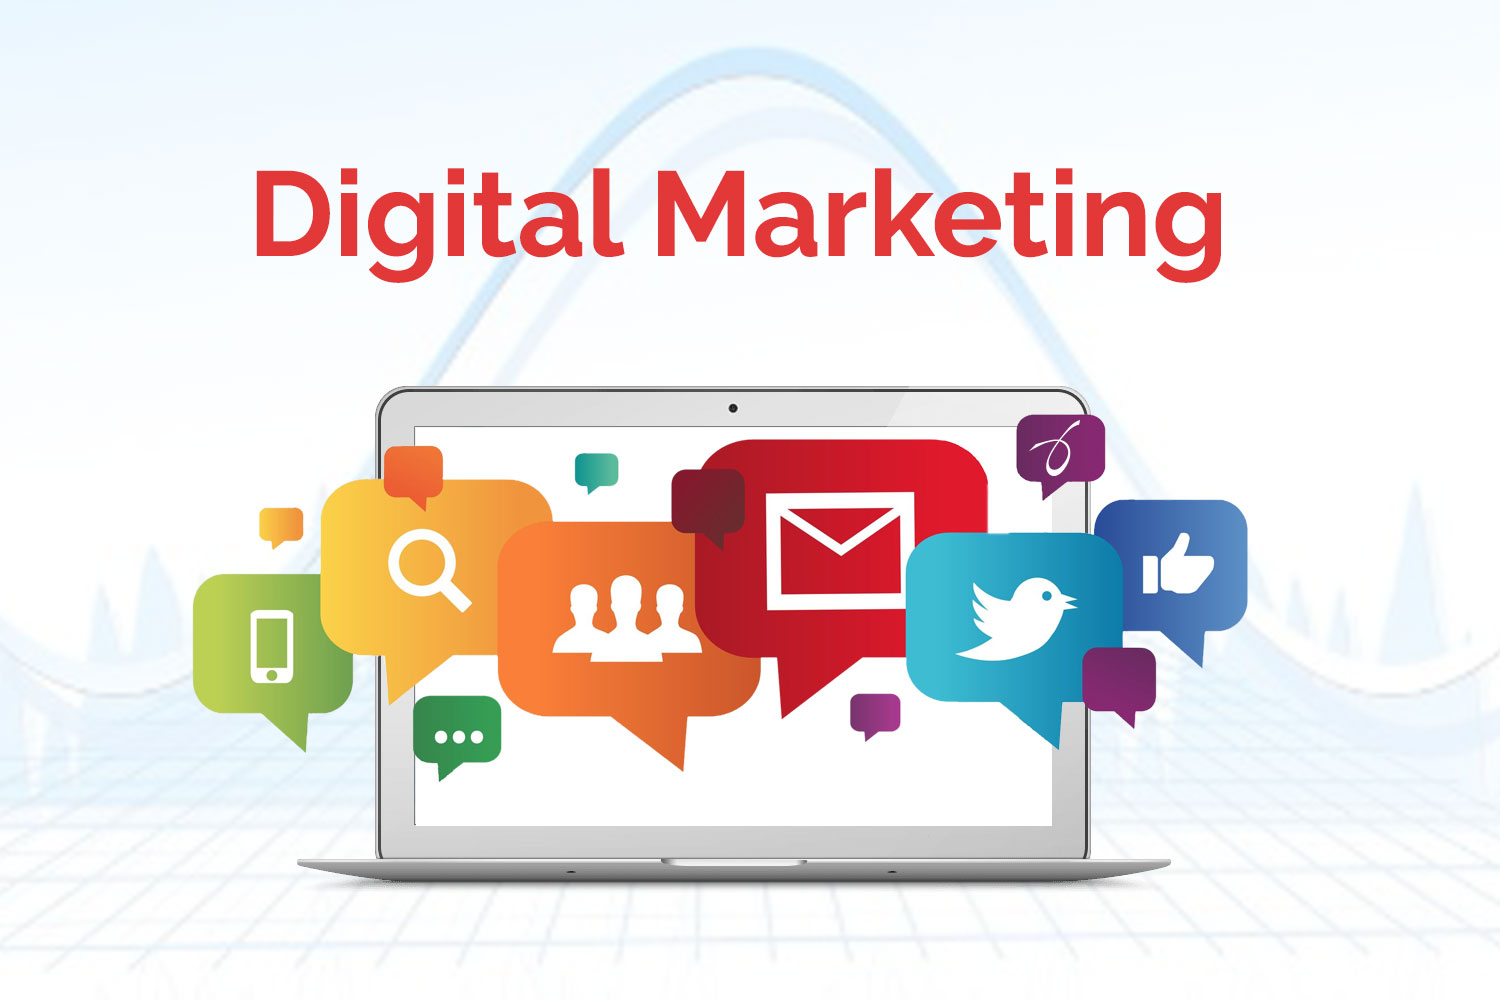 Importance of Digital Marketing - Why should any business go for Digital Marketing